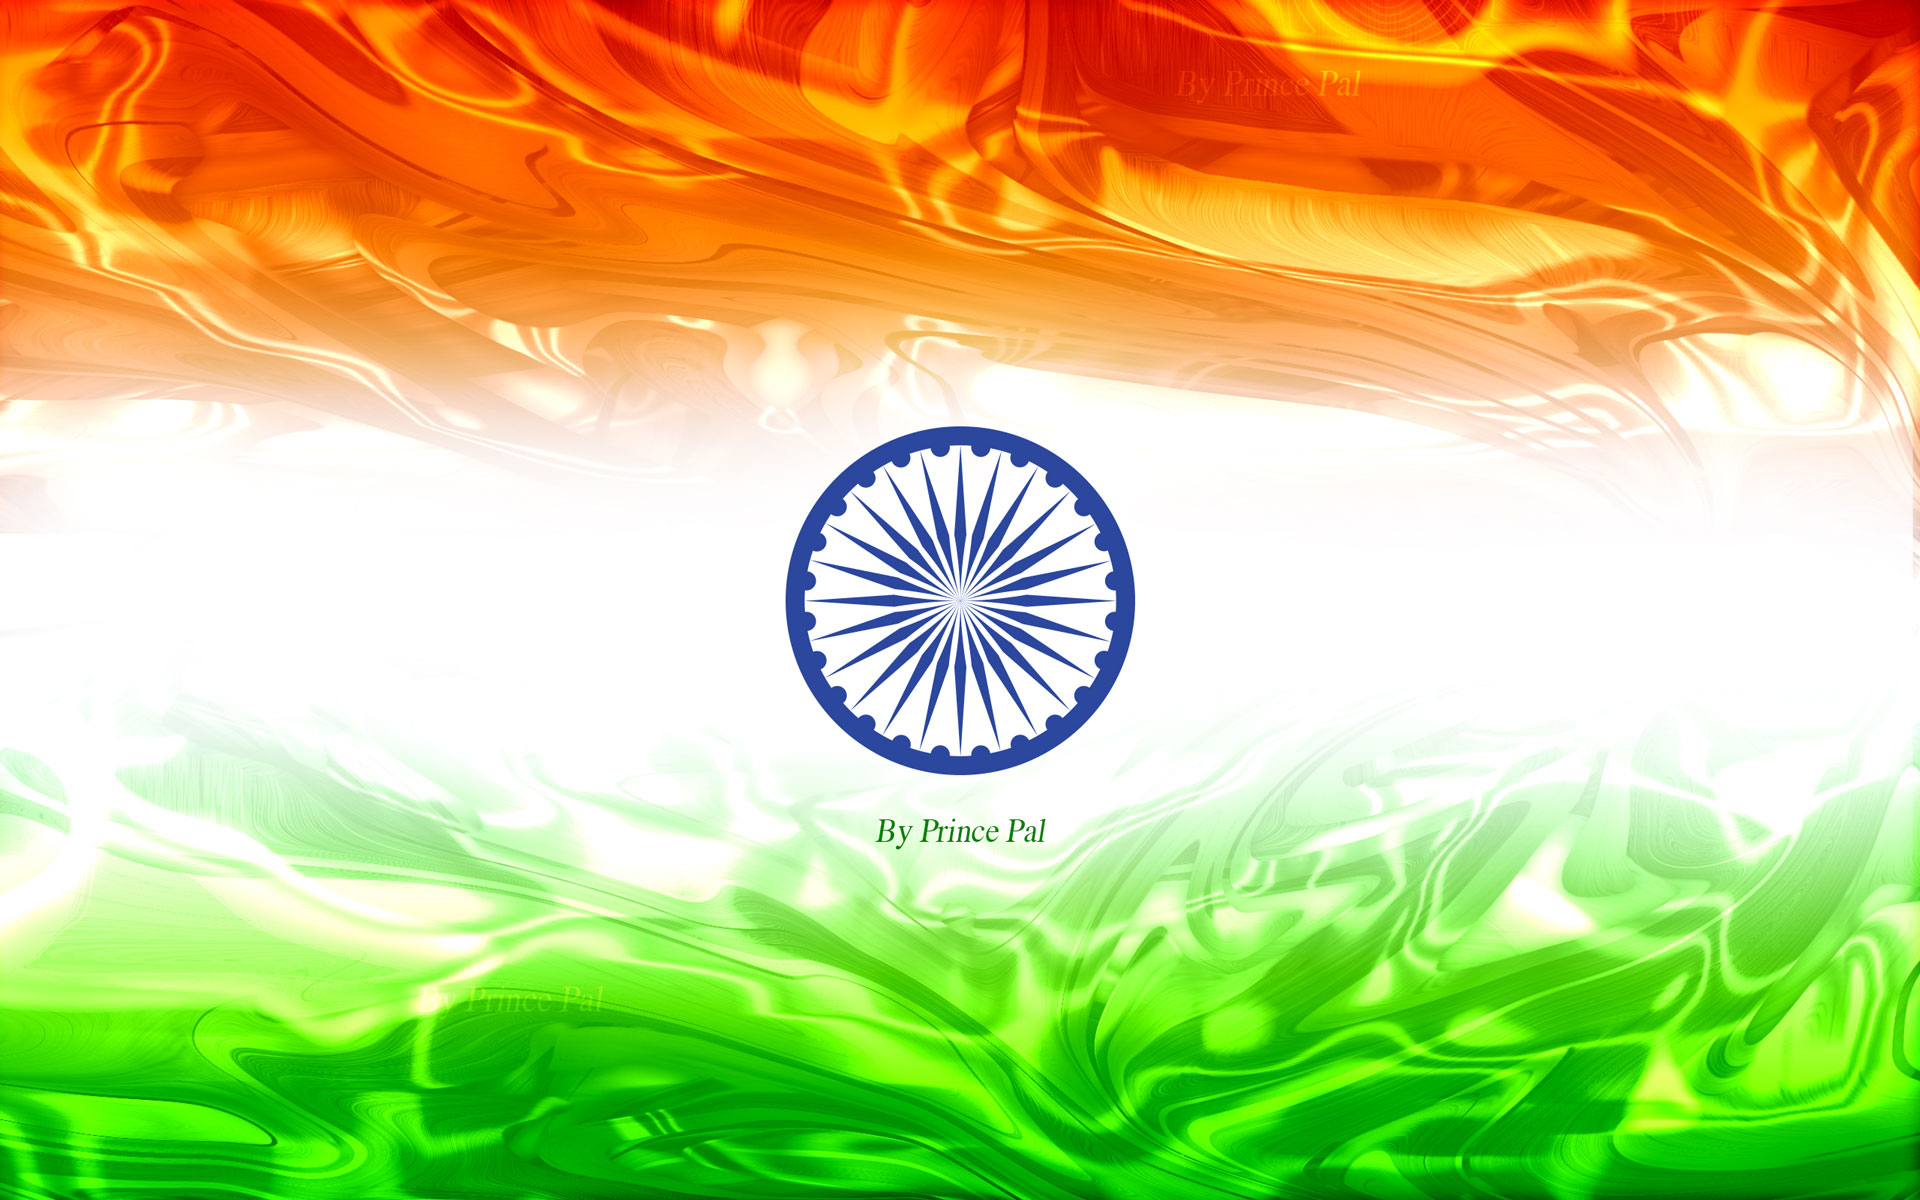 Indian flag images photos pictures and wallpapers atulhost - Indian flag 4k wallpaper ...